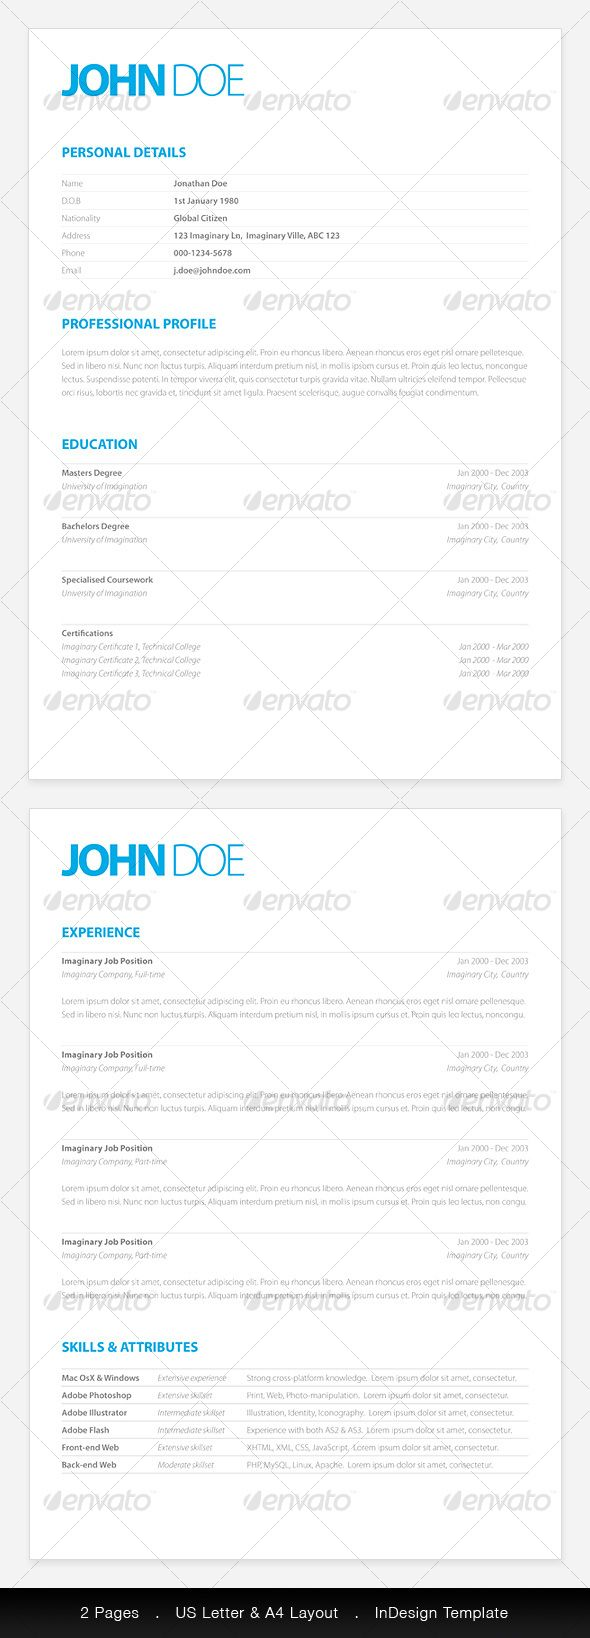 Resume Falsifying Resume 11 best funny resume memes images on pinterest clean elegant resume